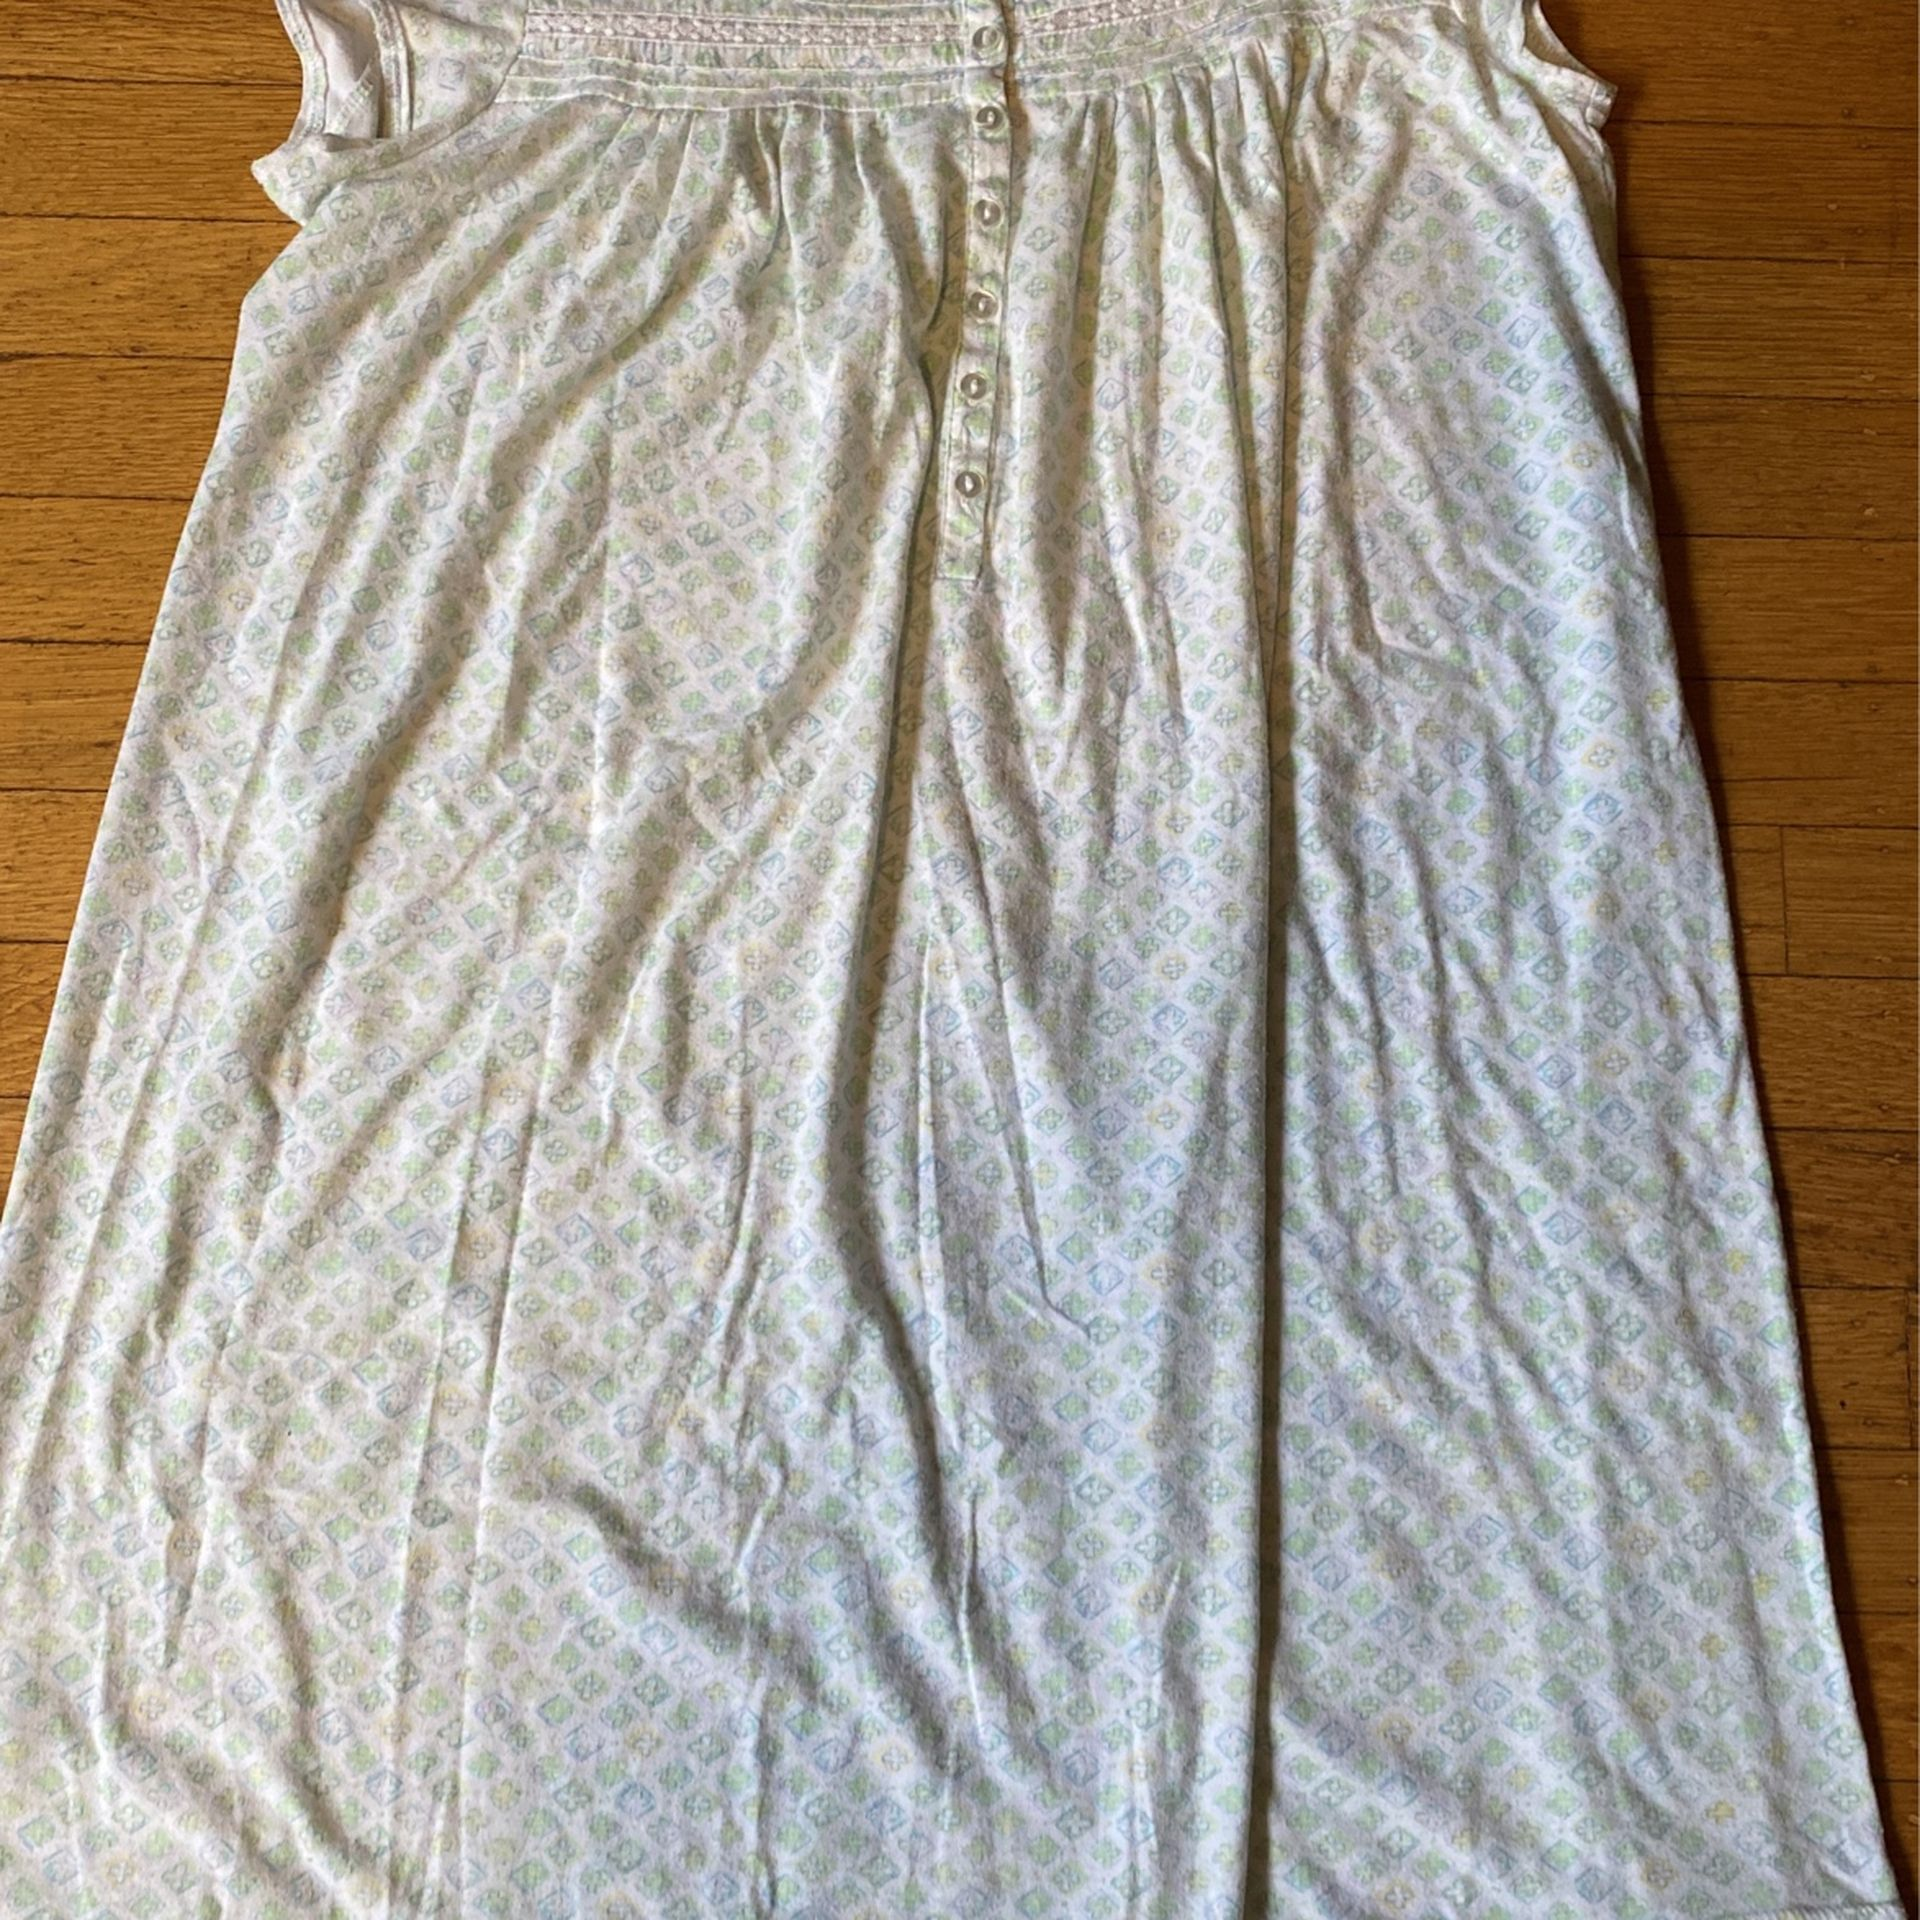 Women's Night Gowns By Earth Angels Size Medium